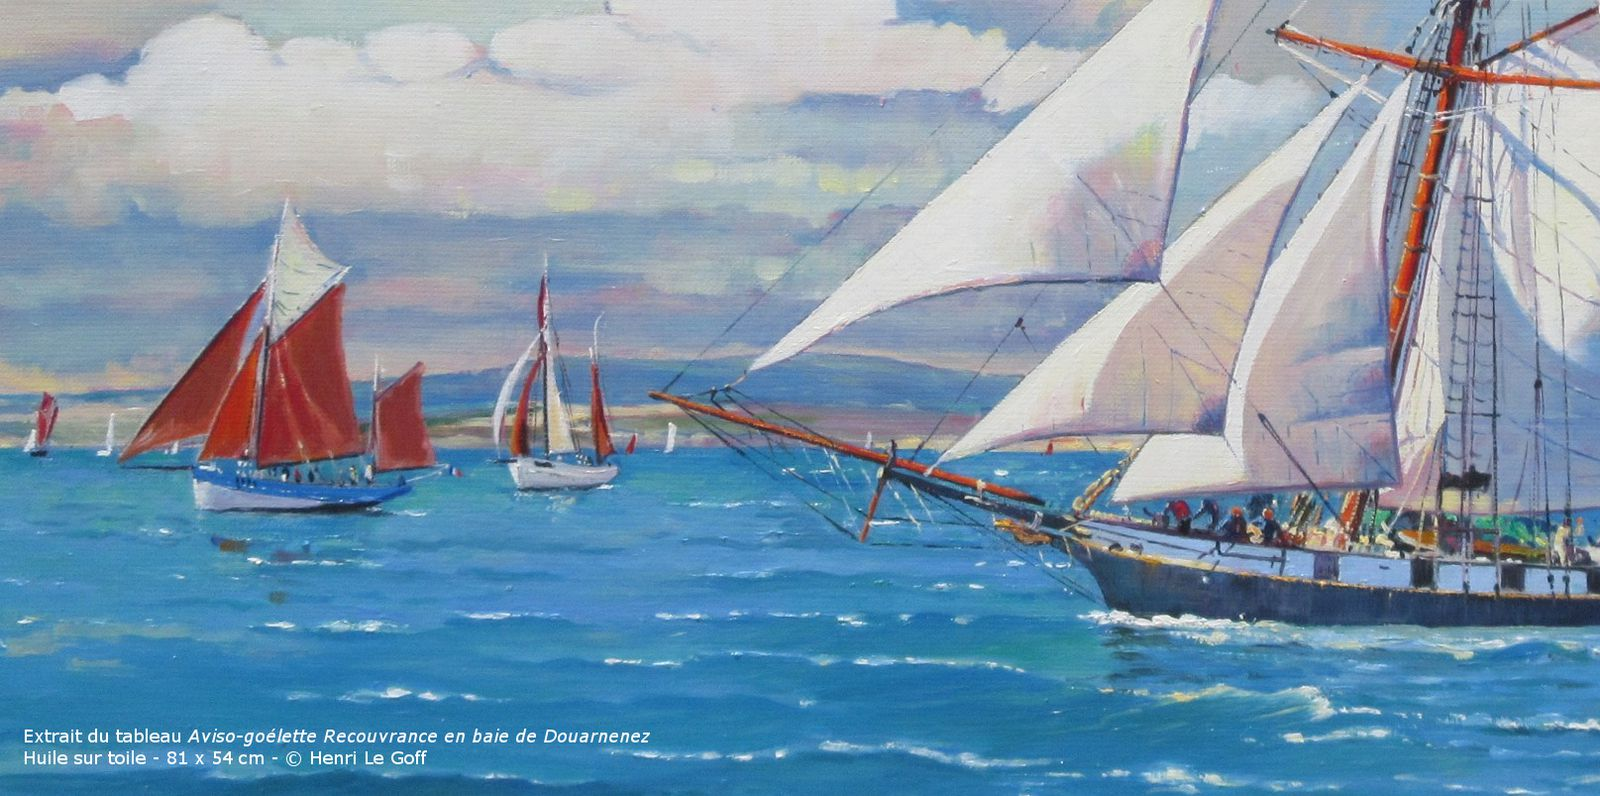 Marine Painting Sailing ship Recouvrance Brittany oil on canvas Henri Le Goff french figurative painter